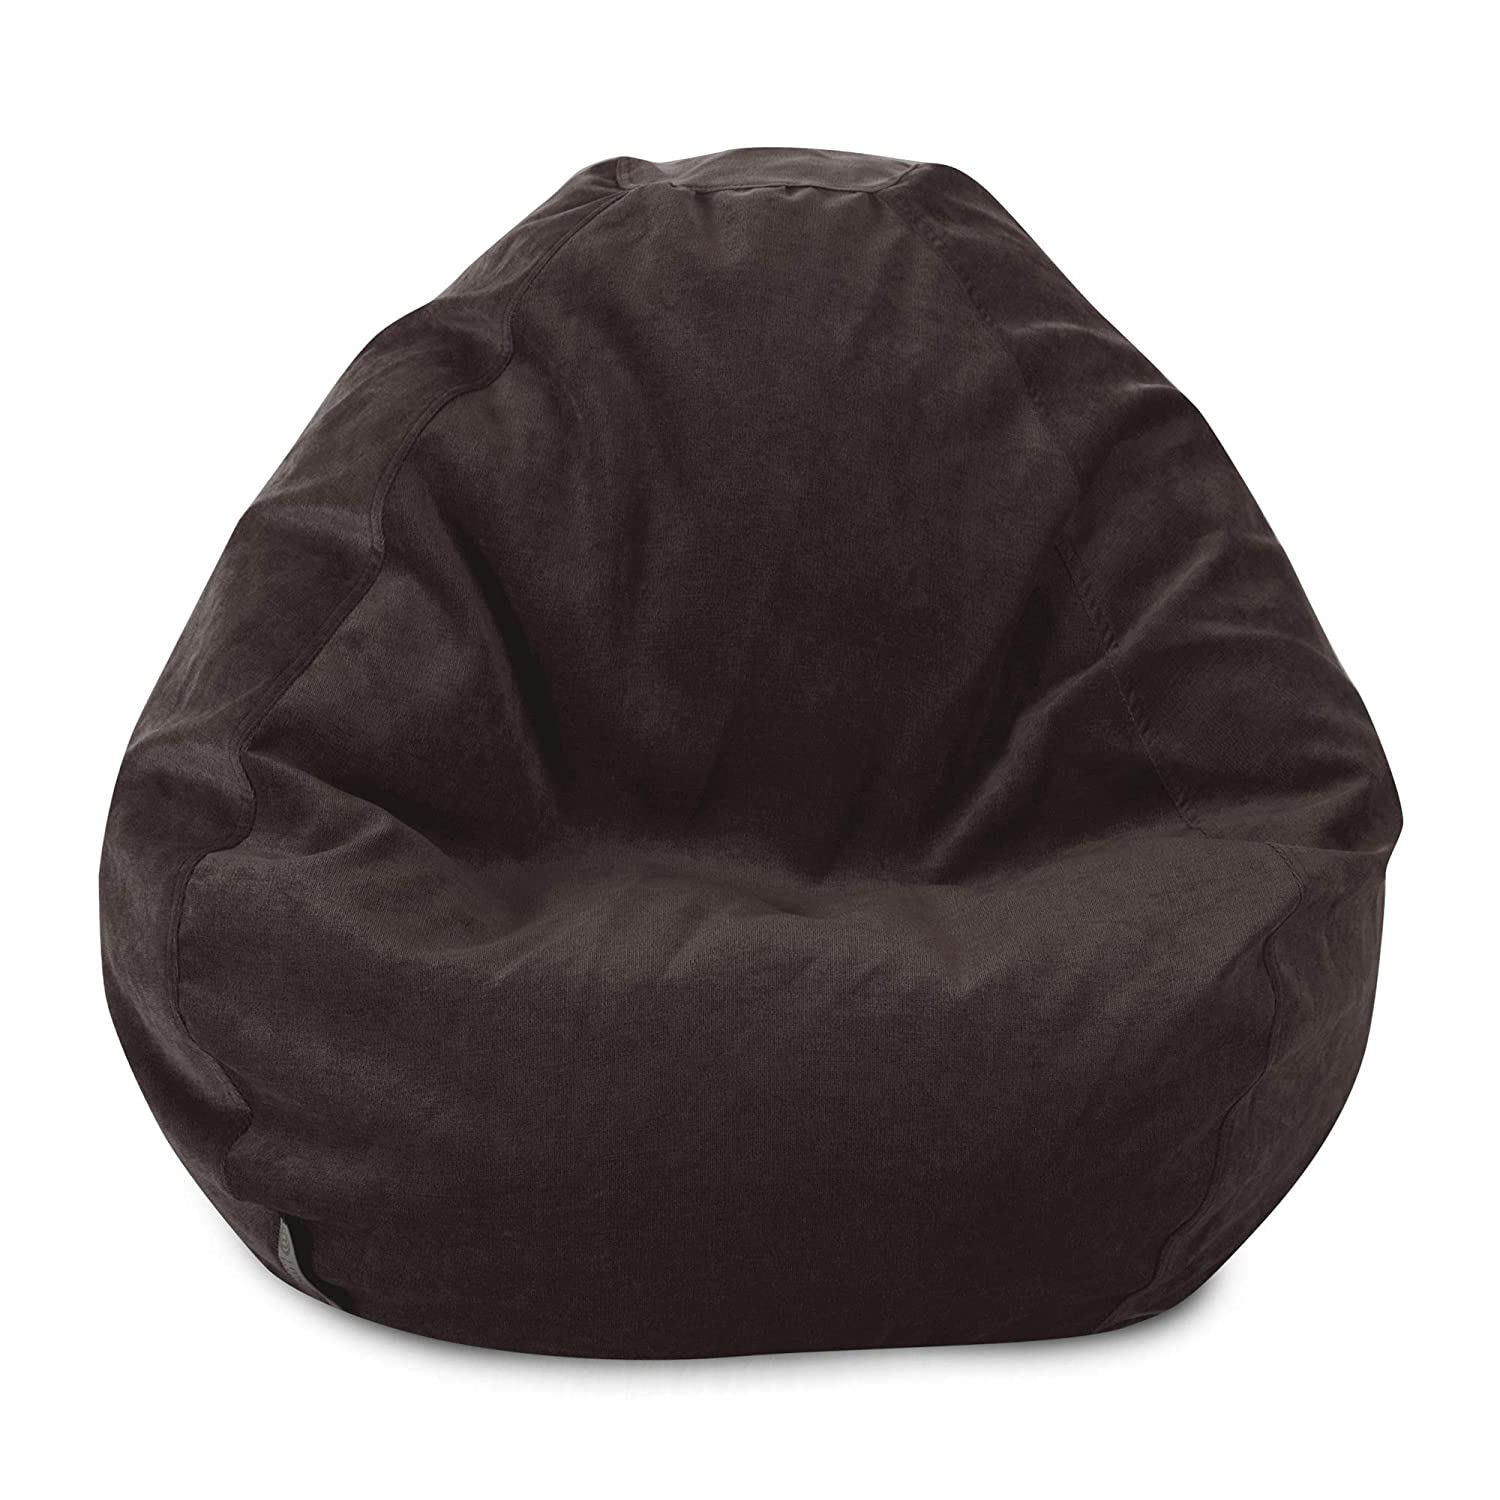 Villa Giant Classic Bean Bags for Small Adults and Kids Majestic Home Goods Classic Bean Bag Chair Vintage Gray 28 x 28 x 22 Inches